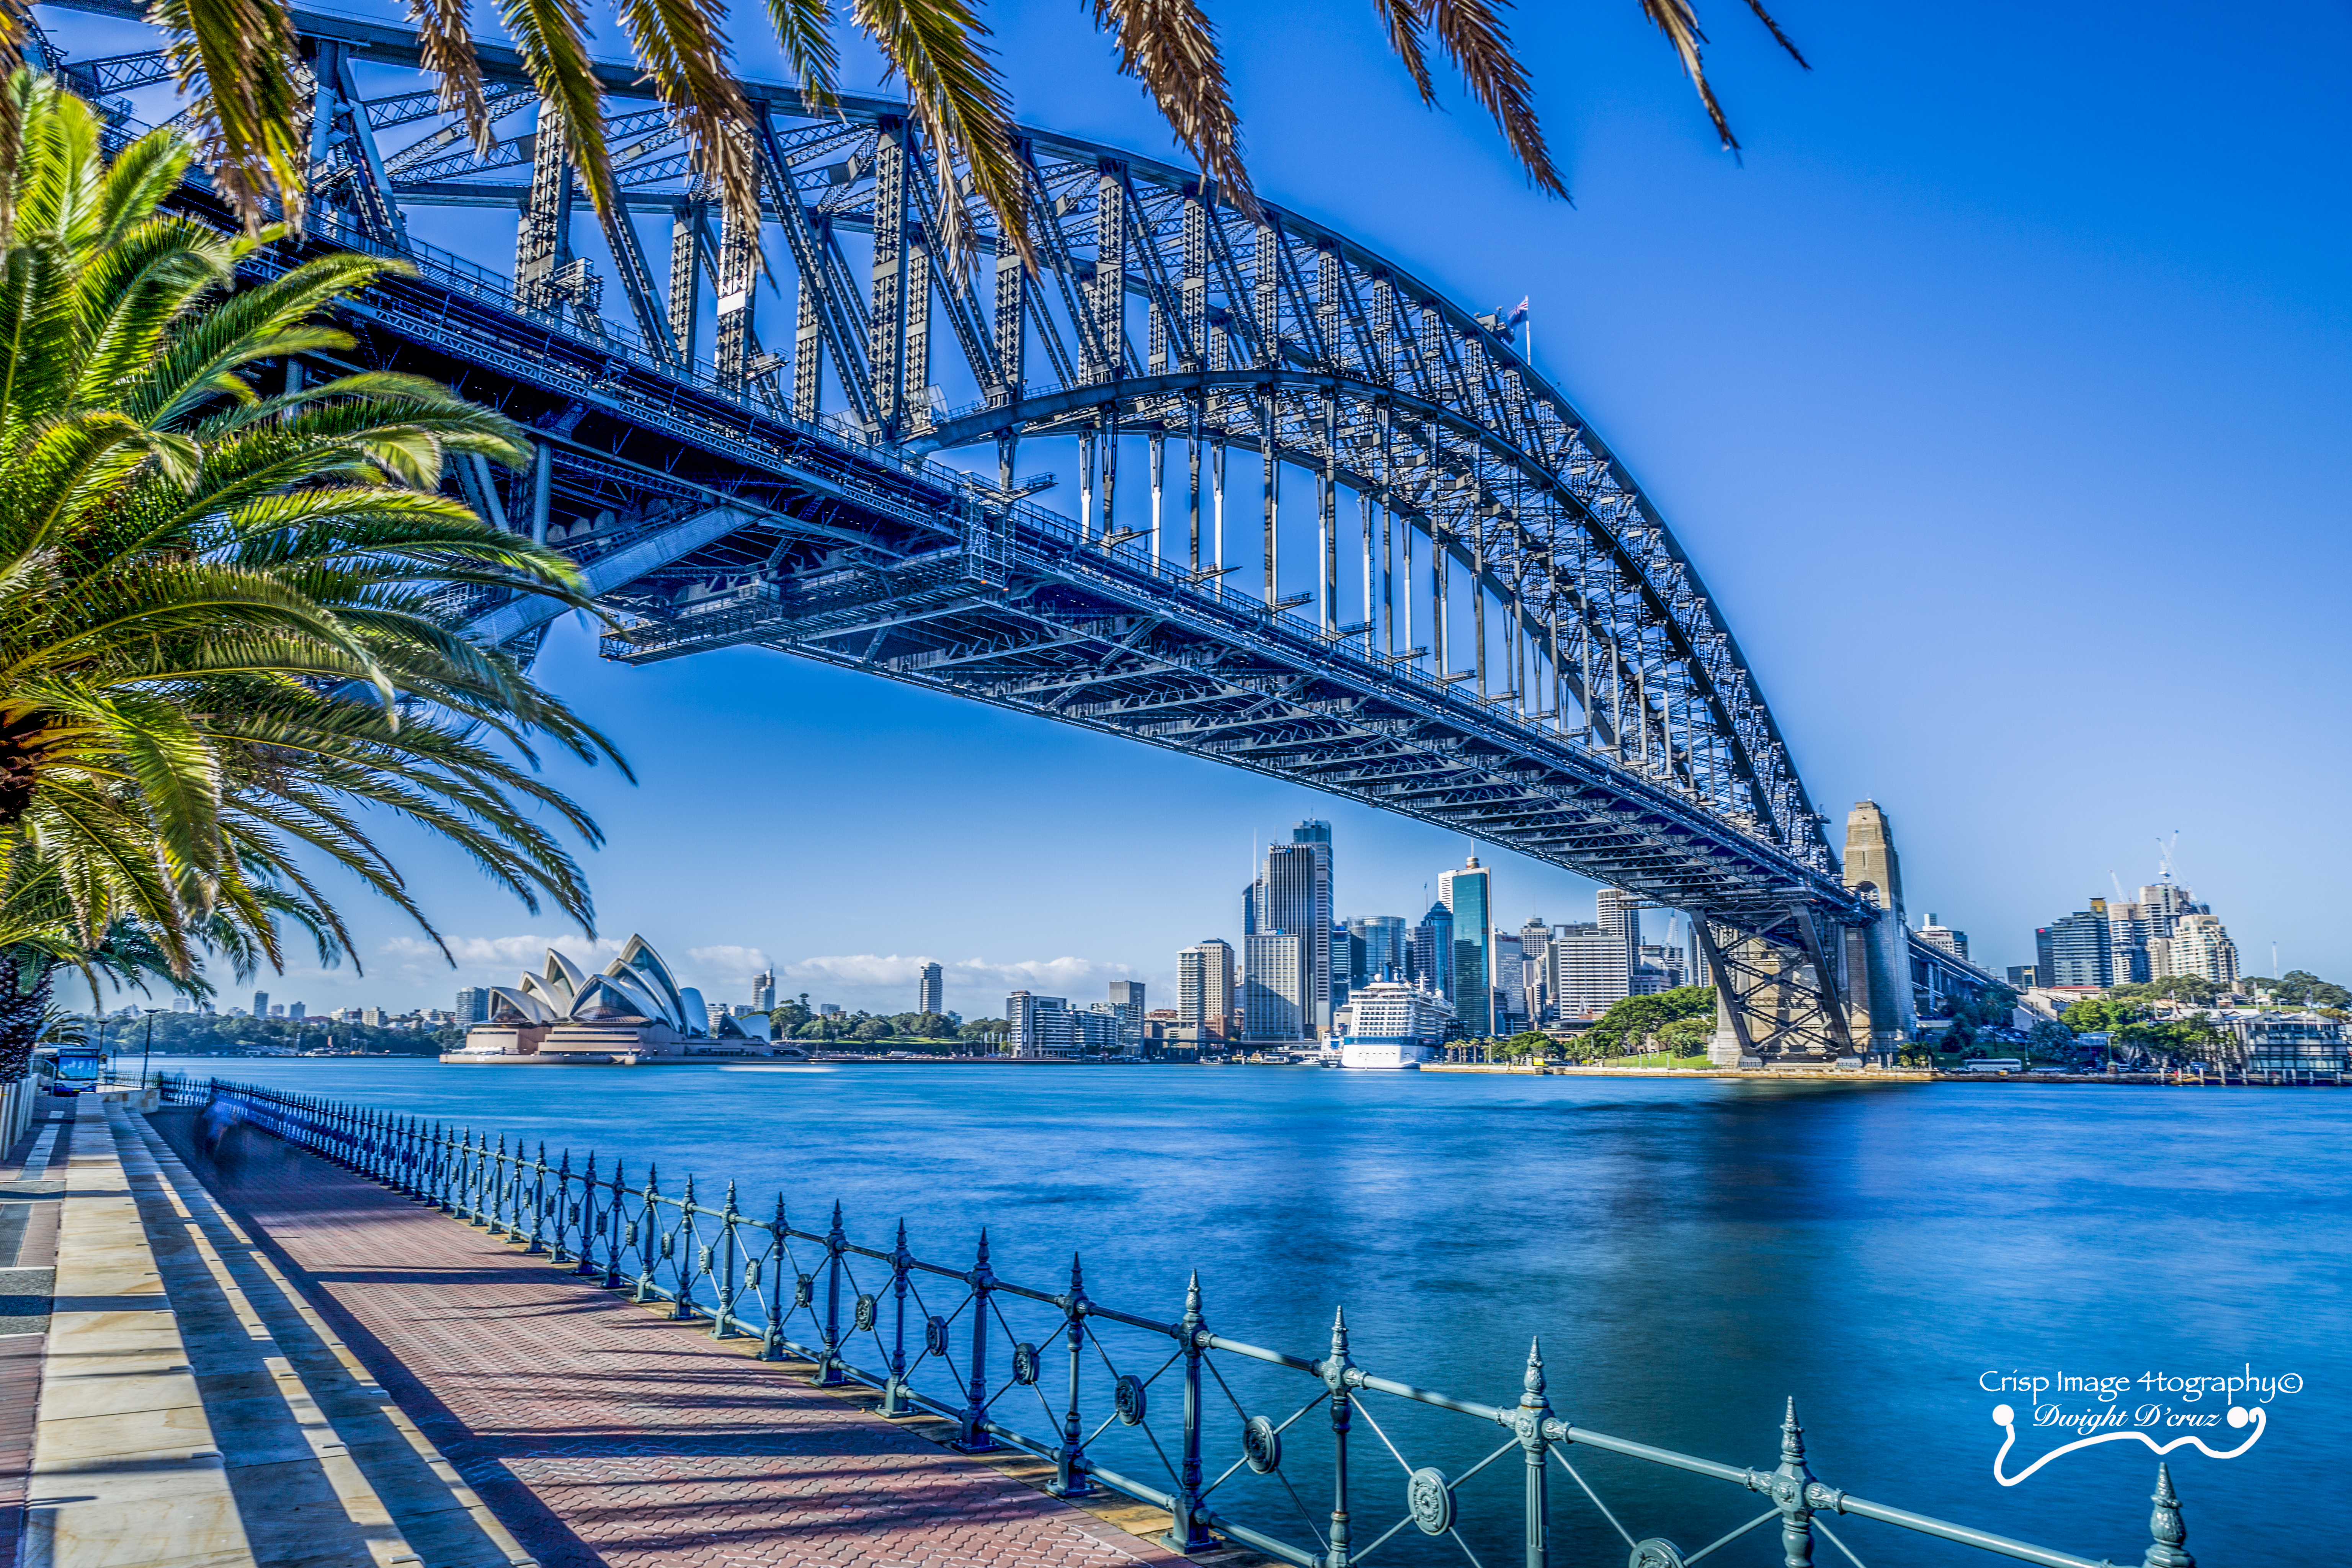 Harbour Bridge (North Sydney)